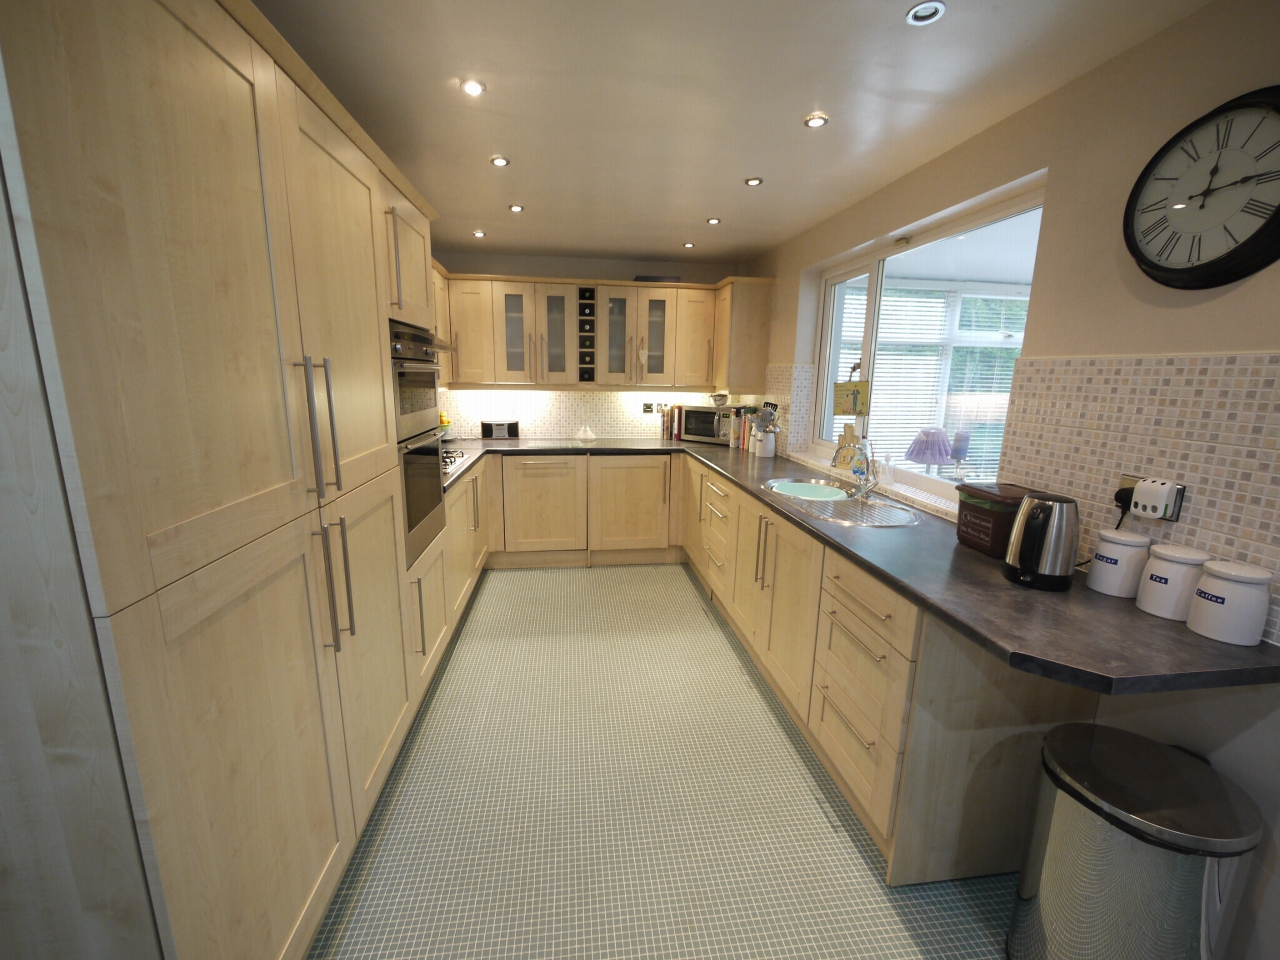 4 bedroom detached house SSTC in Brighouse - Photograph 7.